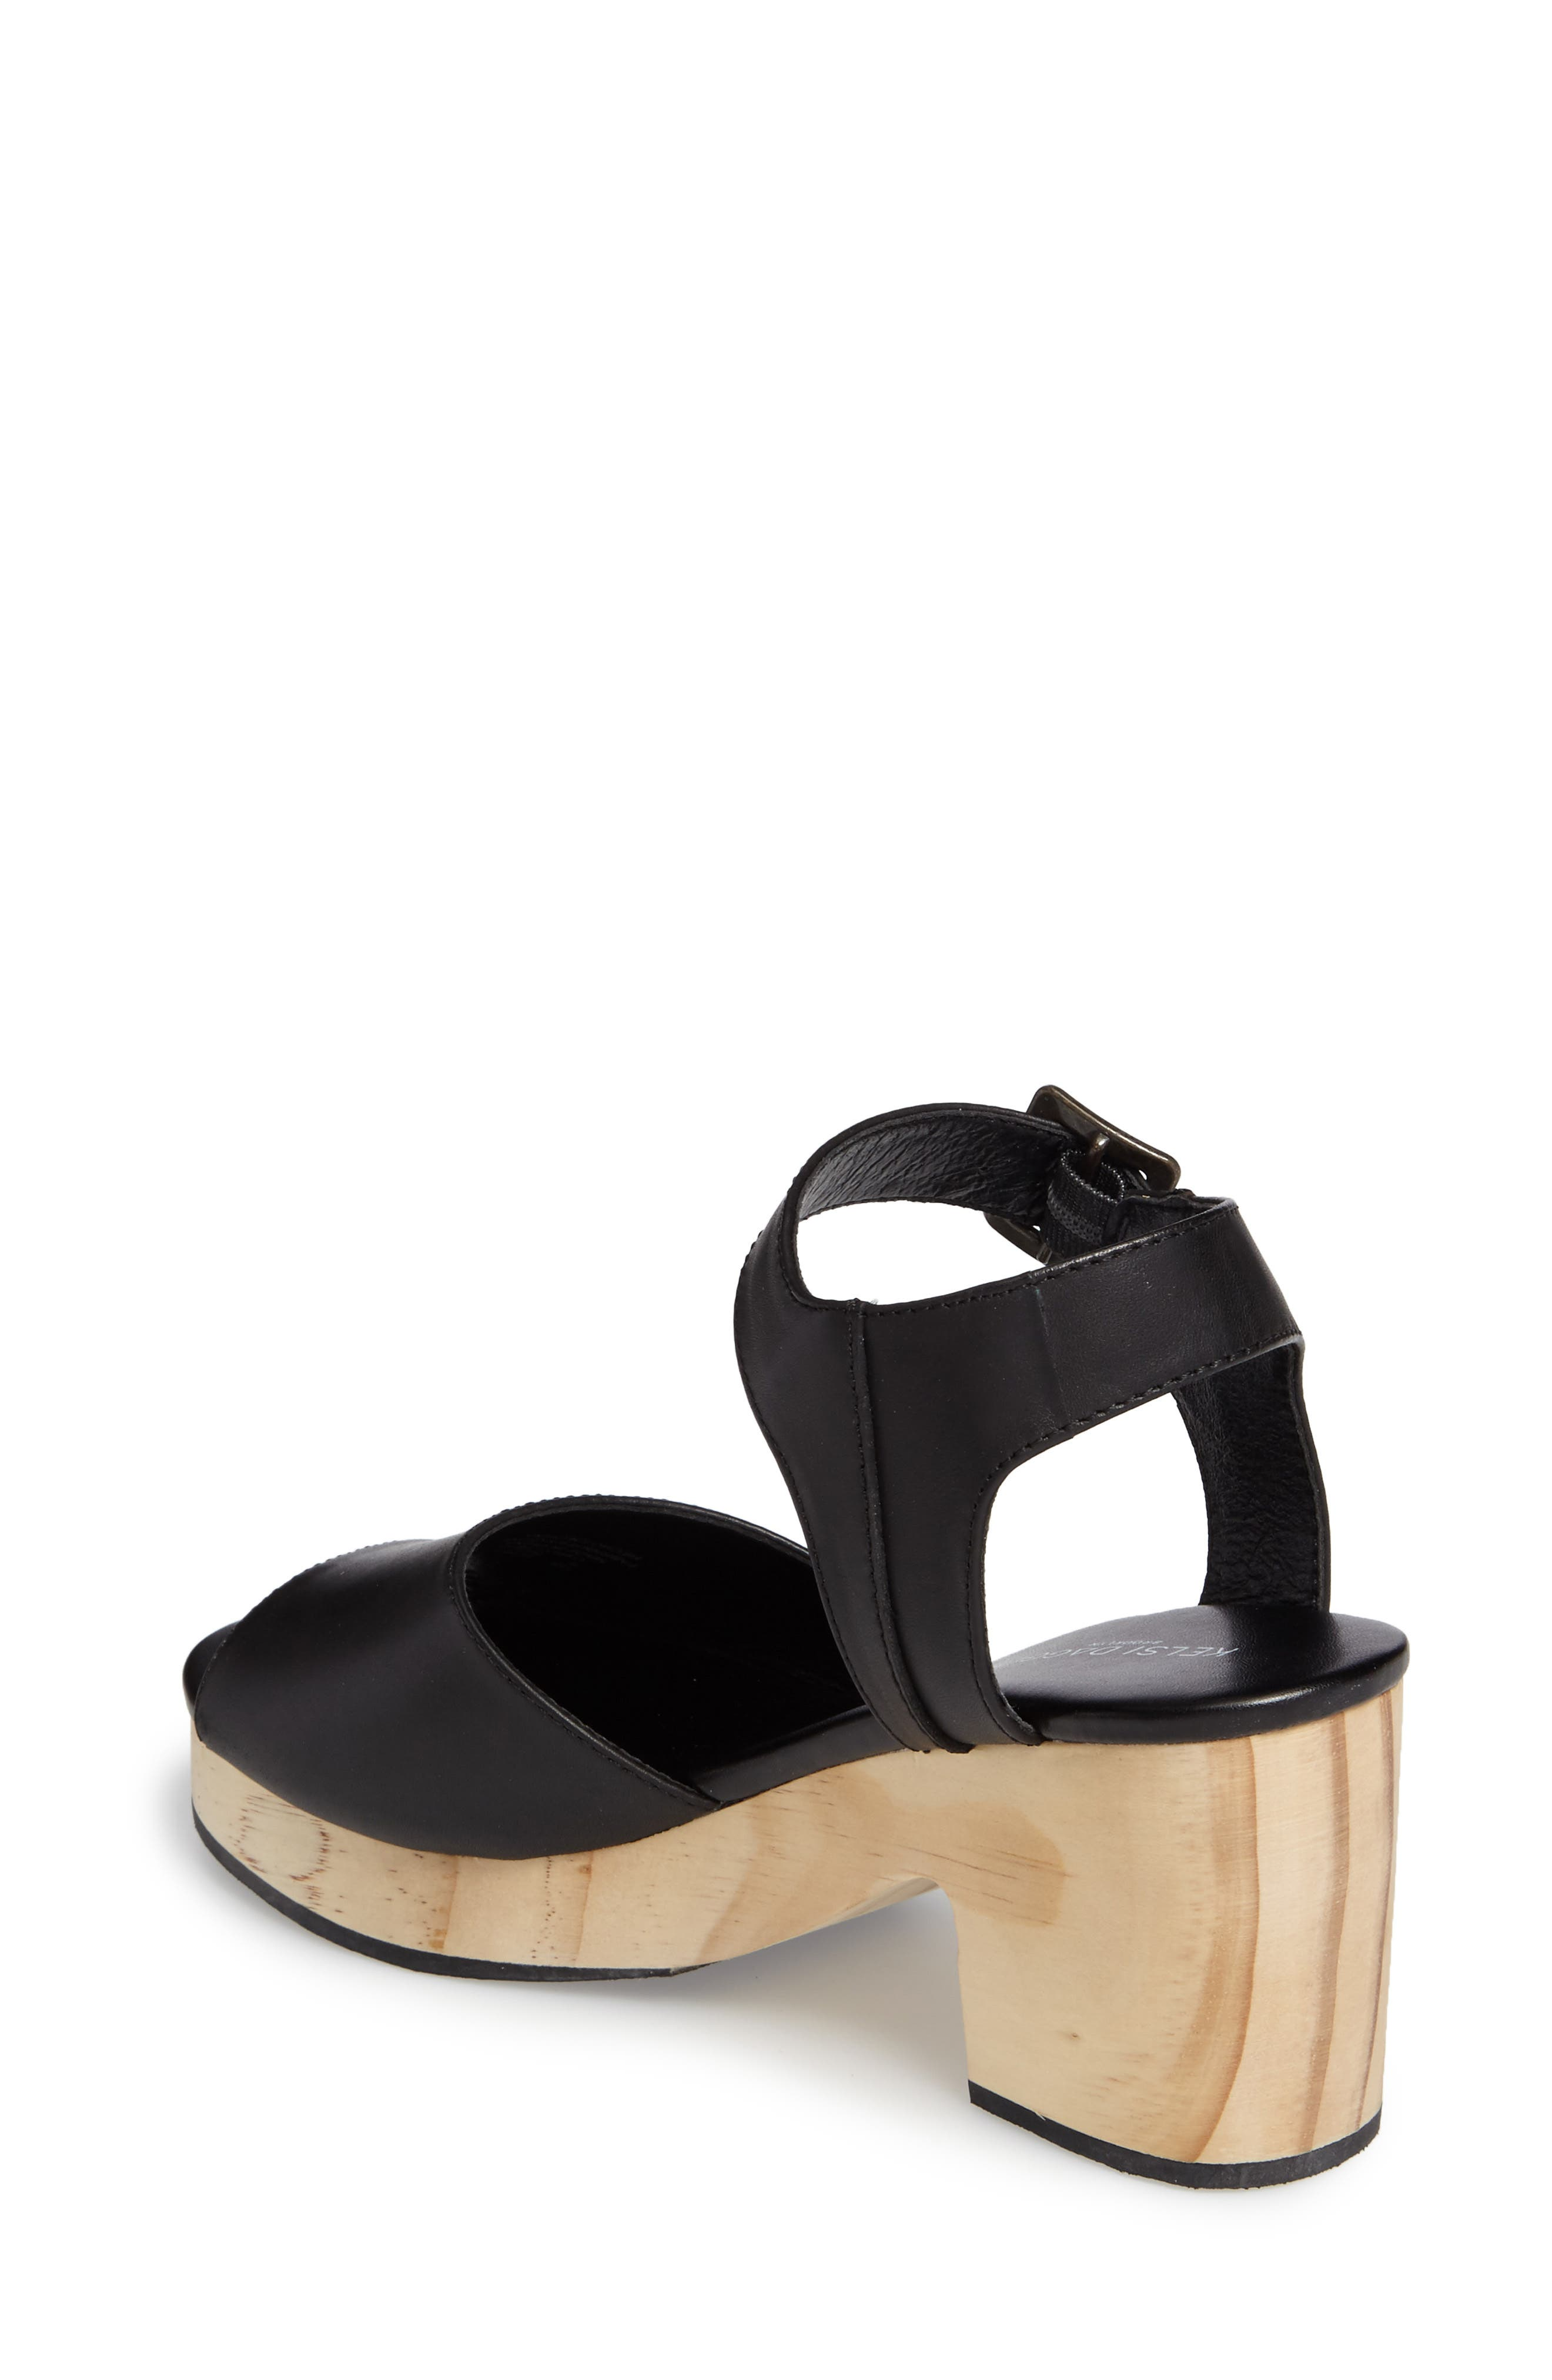 Montgomery Platform Sandal,                             Alternate thumbnail 2, color,                             001